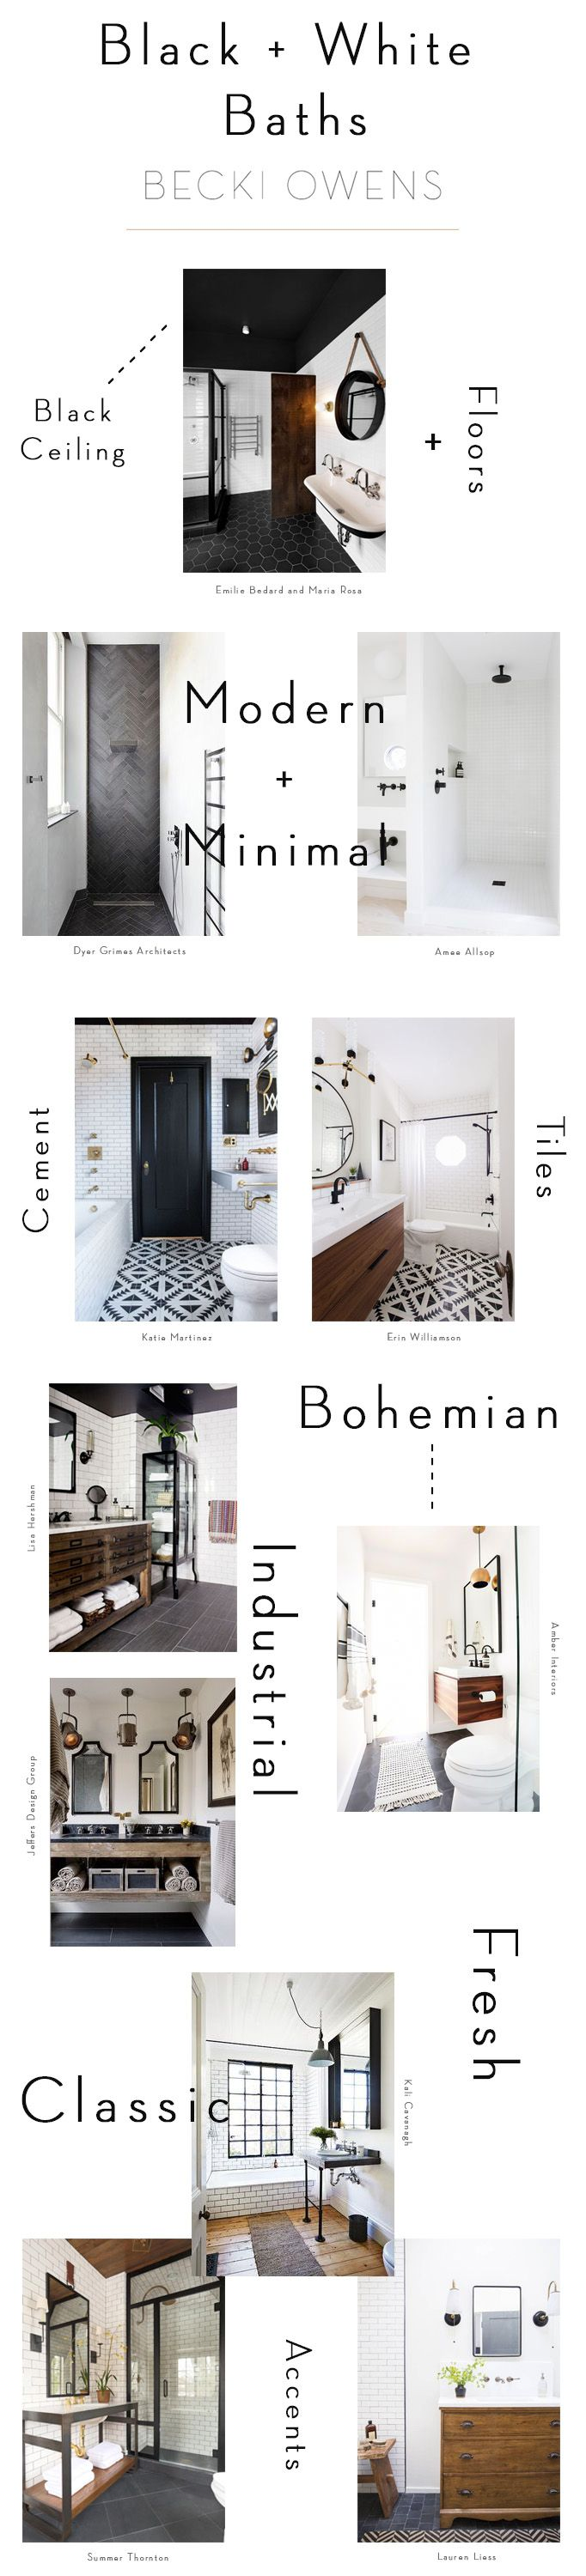 Bold, beautiful, edgy black one of my favorite colors to work with. Lately, I've been drawn to inspiration with black details, and I feel like the month of October is the perfect time to spotlight the role of black in design. When paired with white, it becomes polished and refined. The combination is stunning in bathrooms, kitchens and living spaces. For today, I put together a black+white roundup of some of my favorite bathroom spaces.